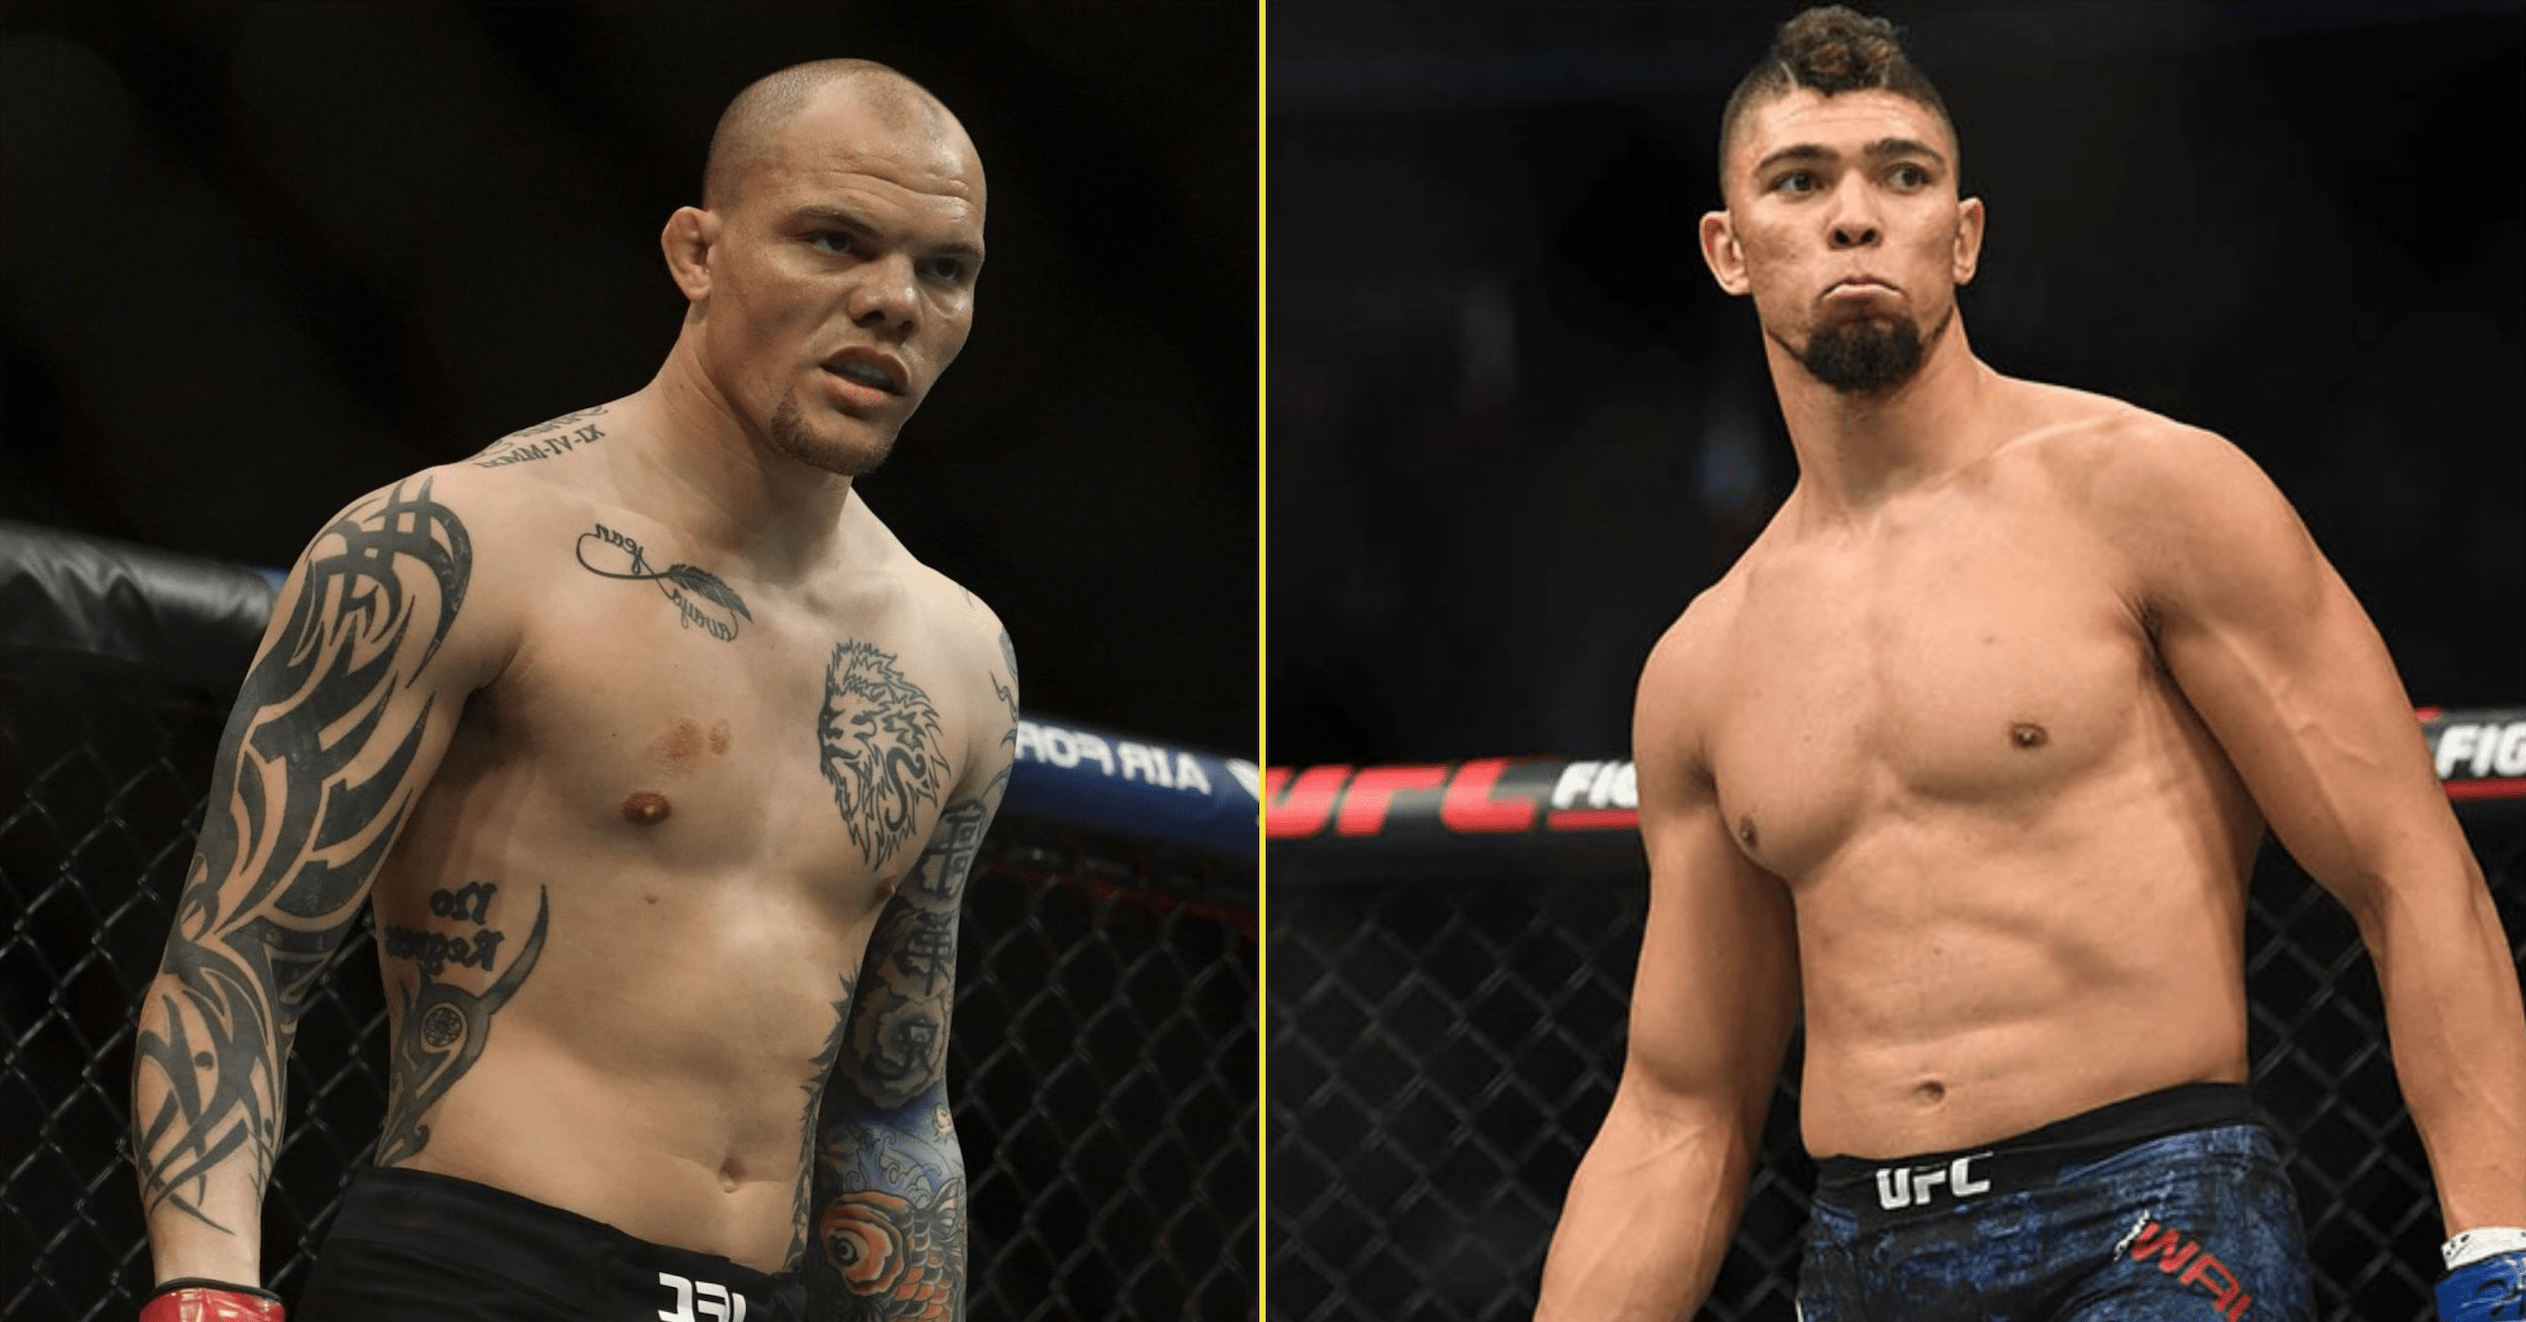 UFC: Anthony Smith Dismisses Johnny Walker's Call Out